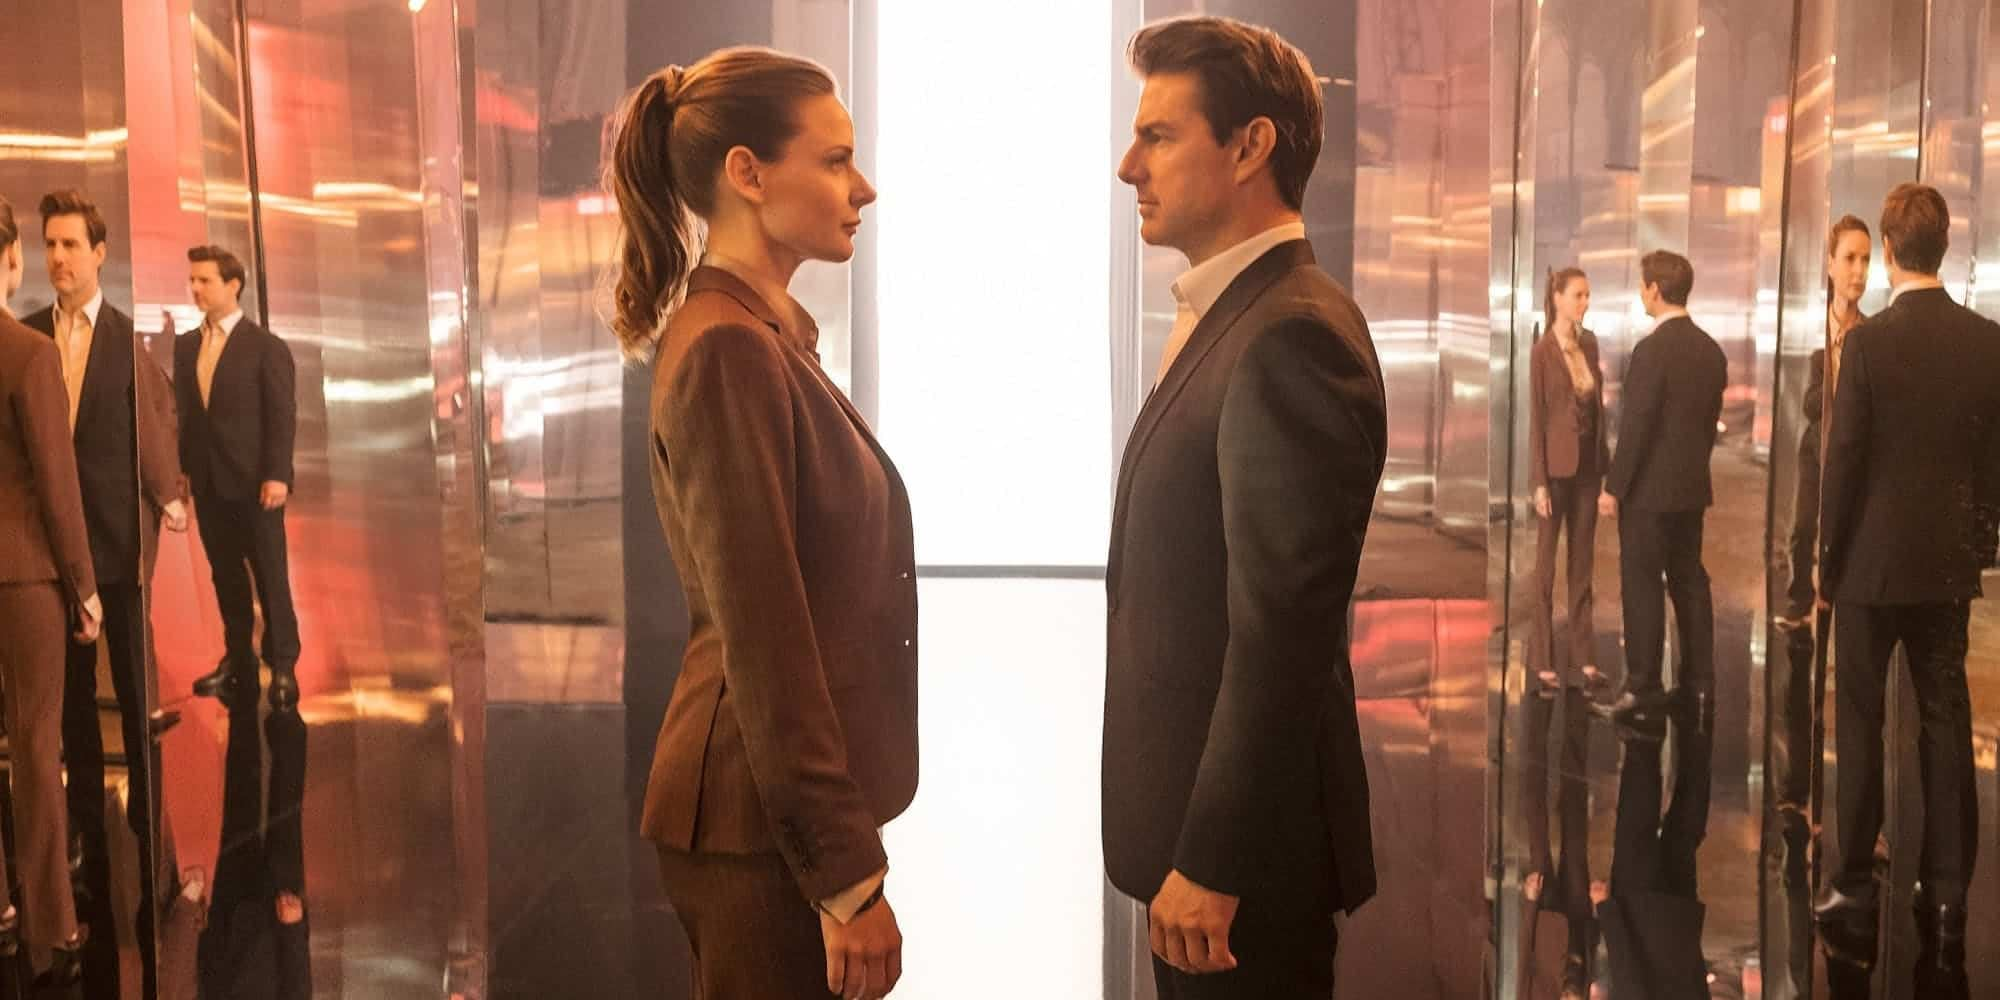 Rebecca-Ferguson-and-Tom-Cruise-in-Mission-Impossible-Fallout-cropped.jpg